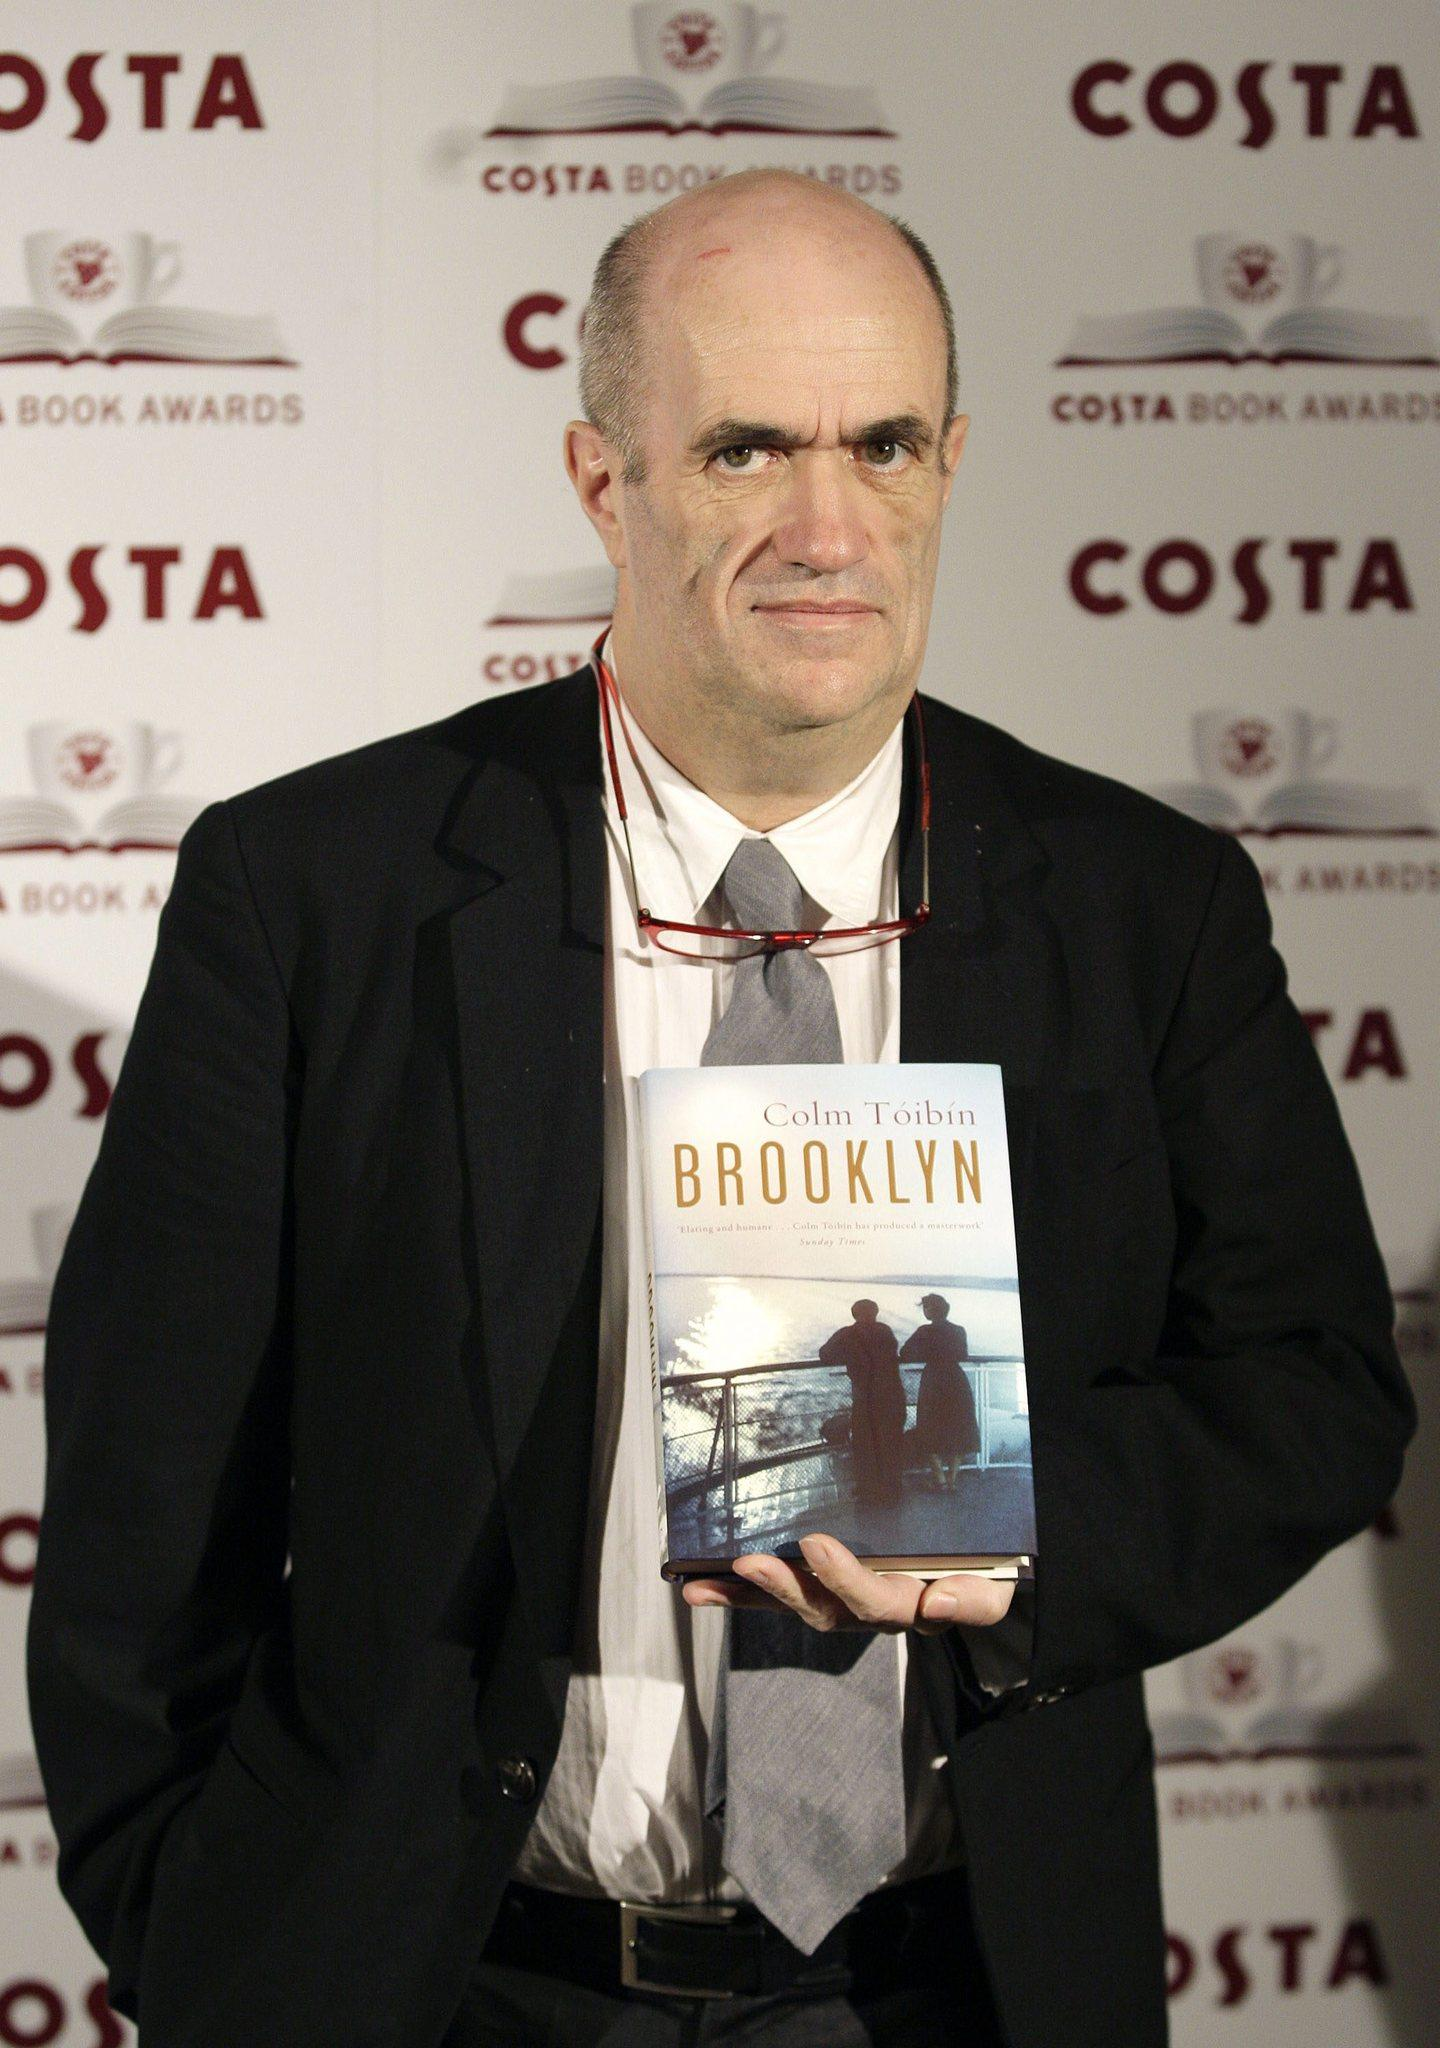 Irish author Colm Toibin poses during a shortlisted authors photocall for the 2009 Costa Book Award Winners, in central London.